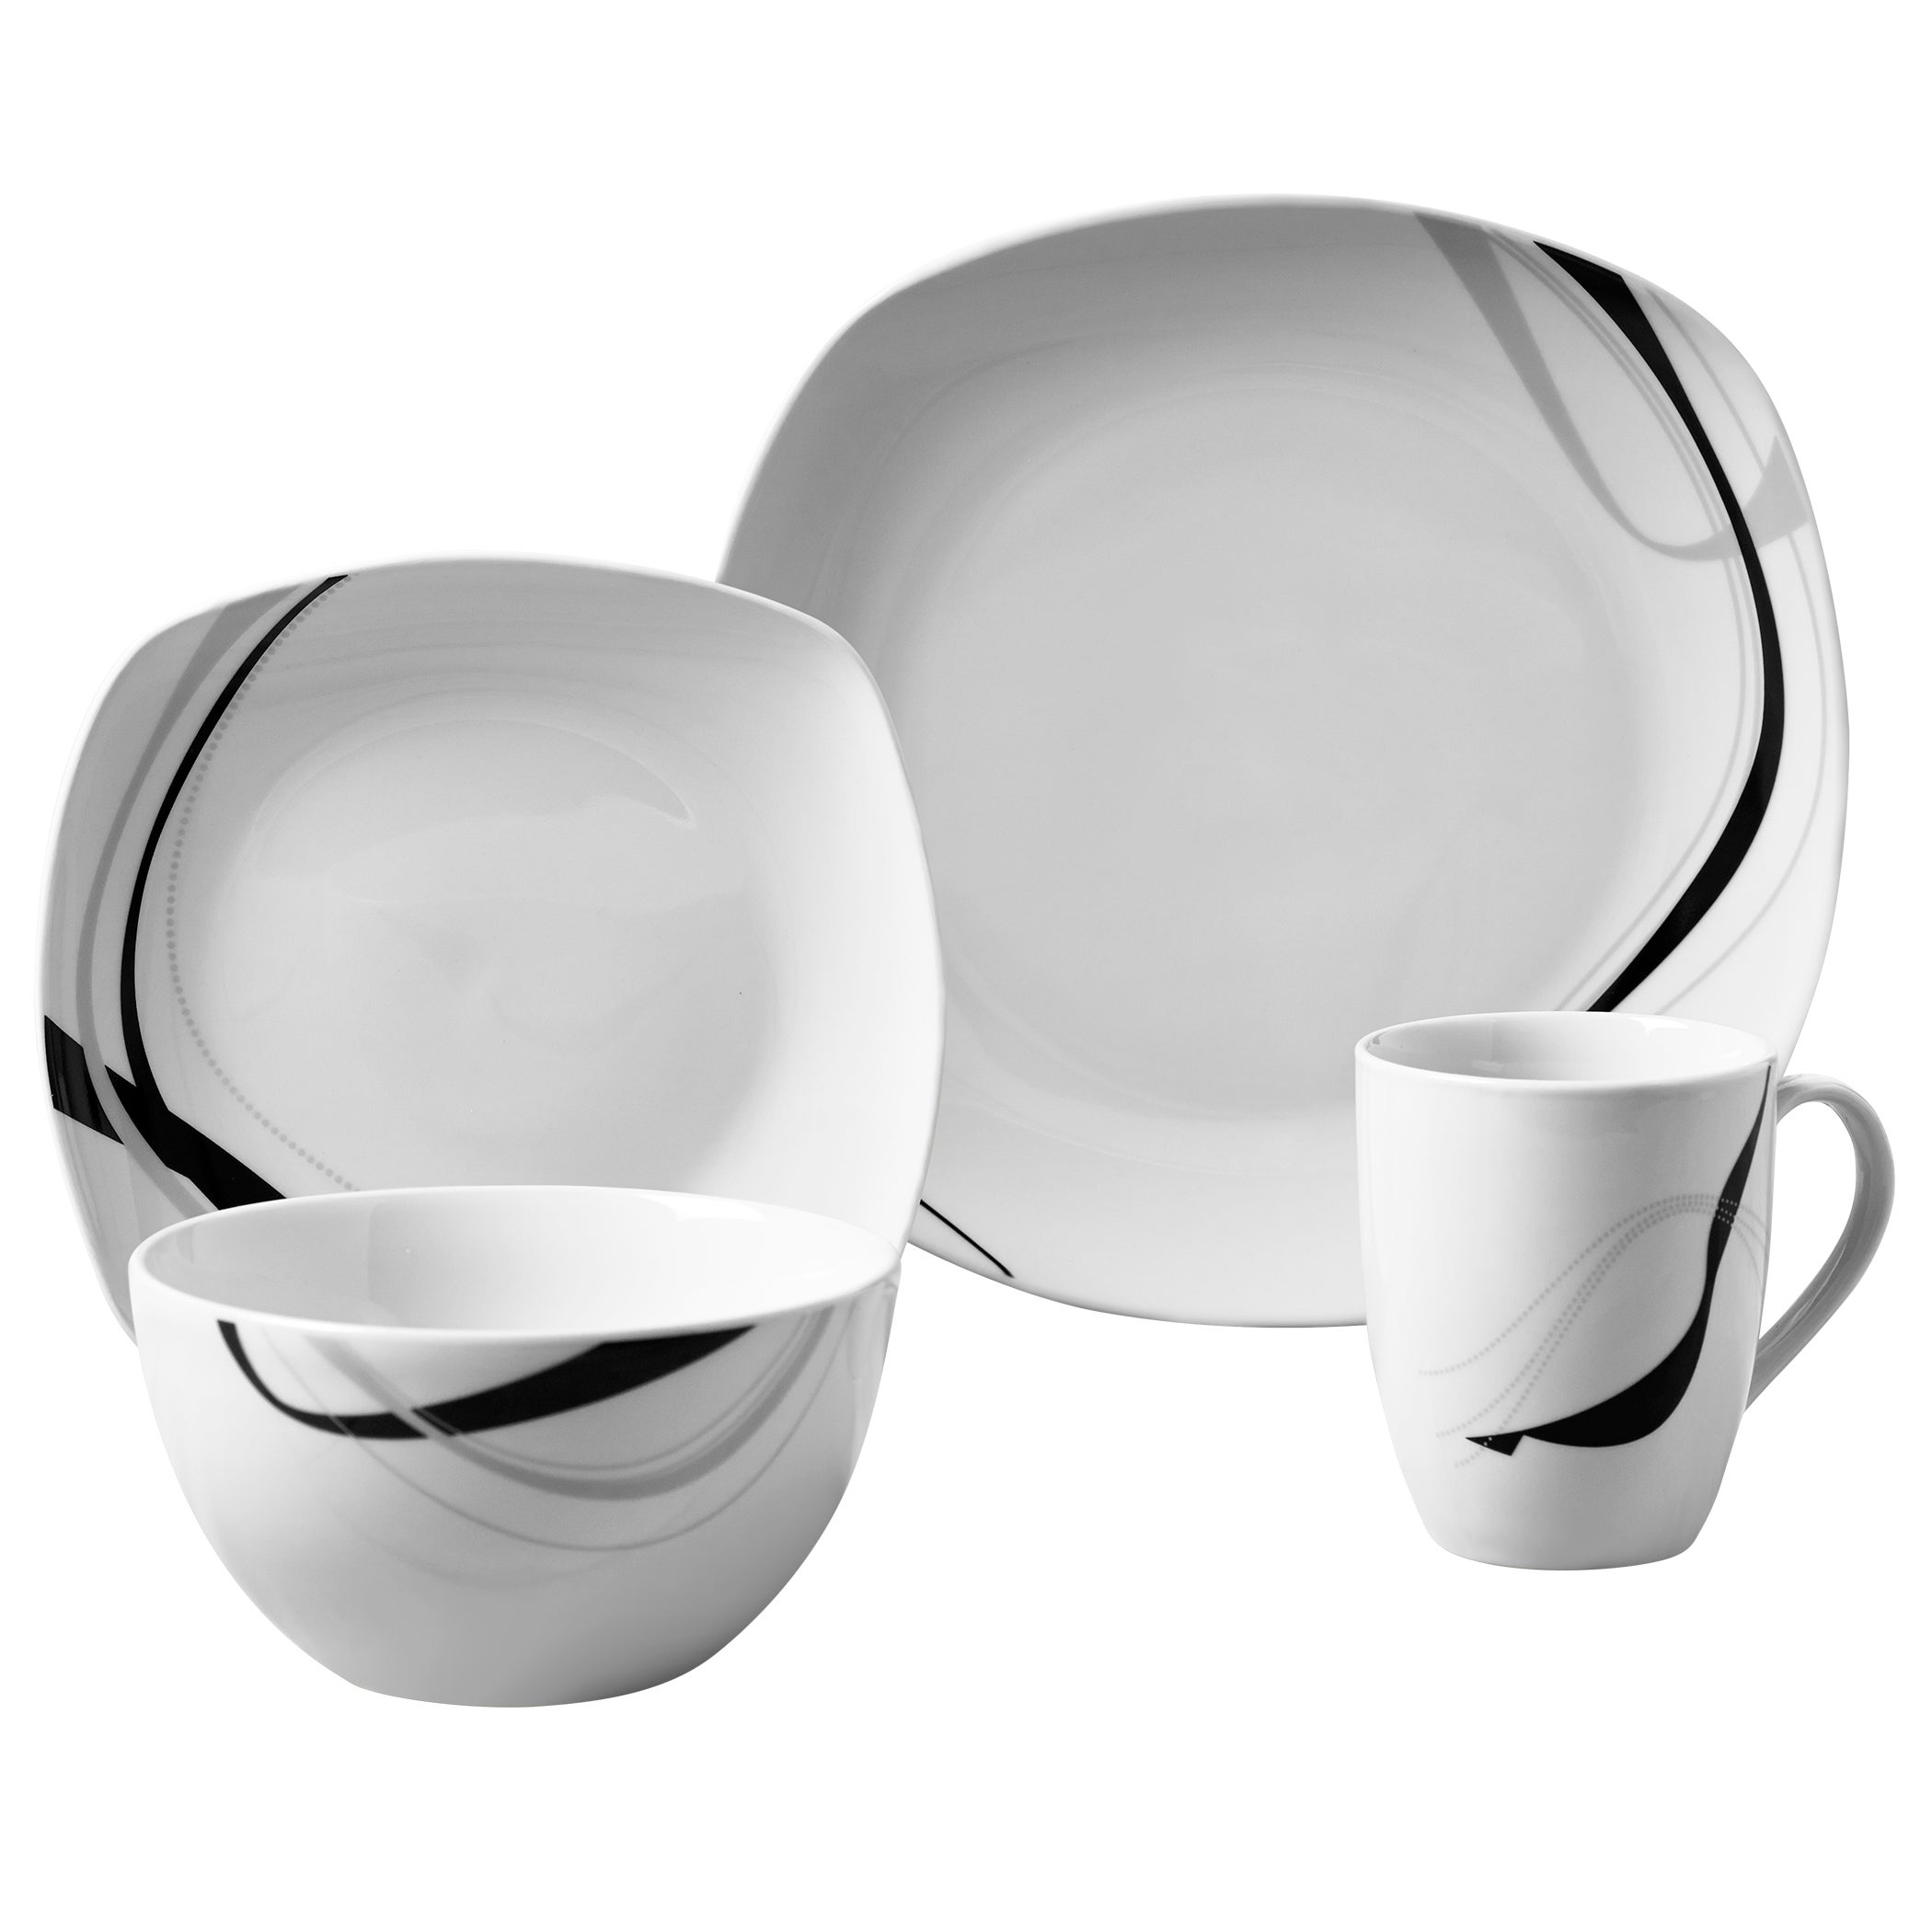 Carnival 16pc Soft Square Porcelain Dinnerware Set - Free Shipping Today - Overstock - 18524838  sc 1 st  Overstock & Carnival 16pc Soft Square Porcelain Dinnerware Set - Free Shipping ...